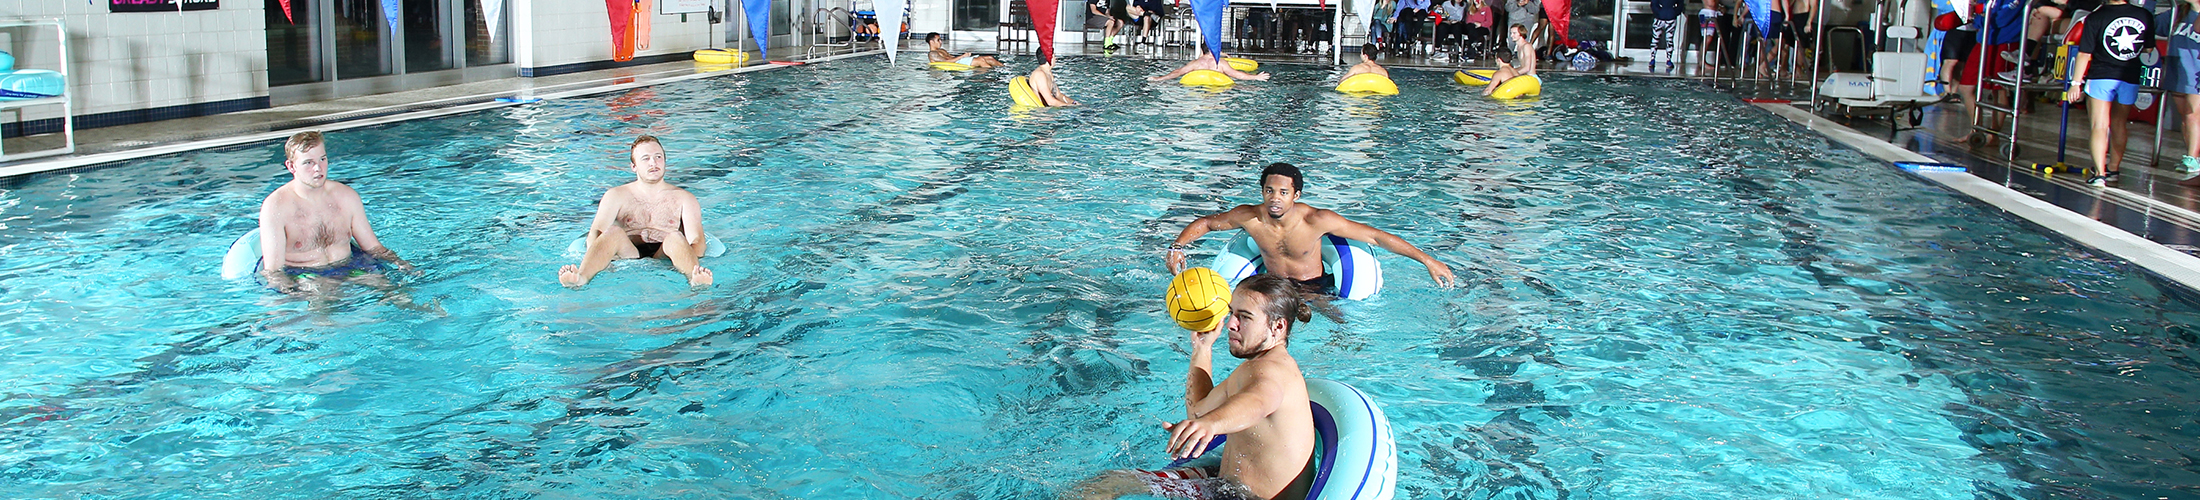 students in rafts in pool